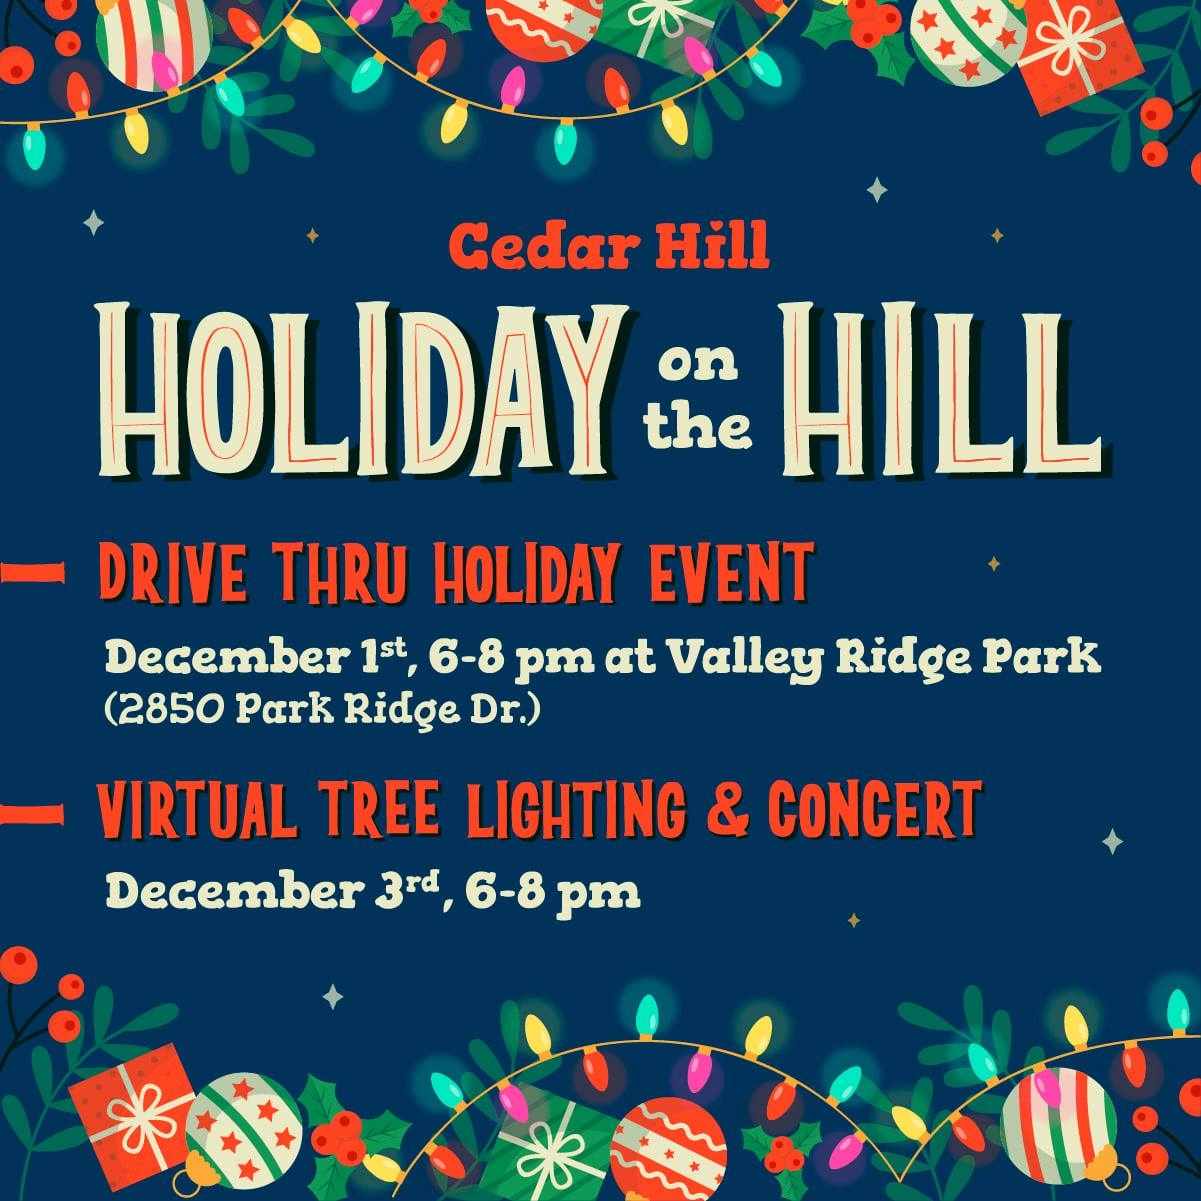 Cedar Hill Holiday on the Hill flyer